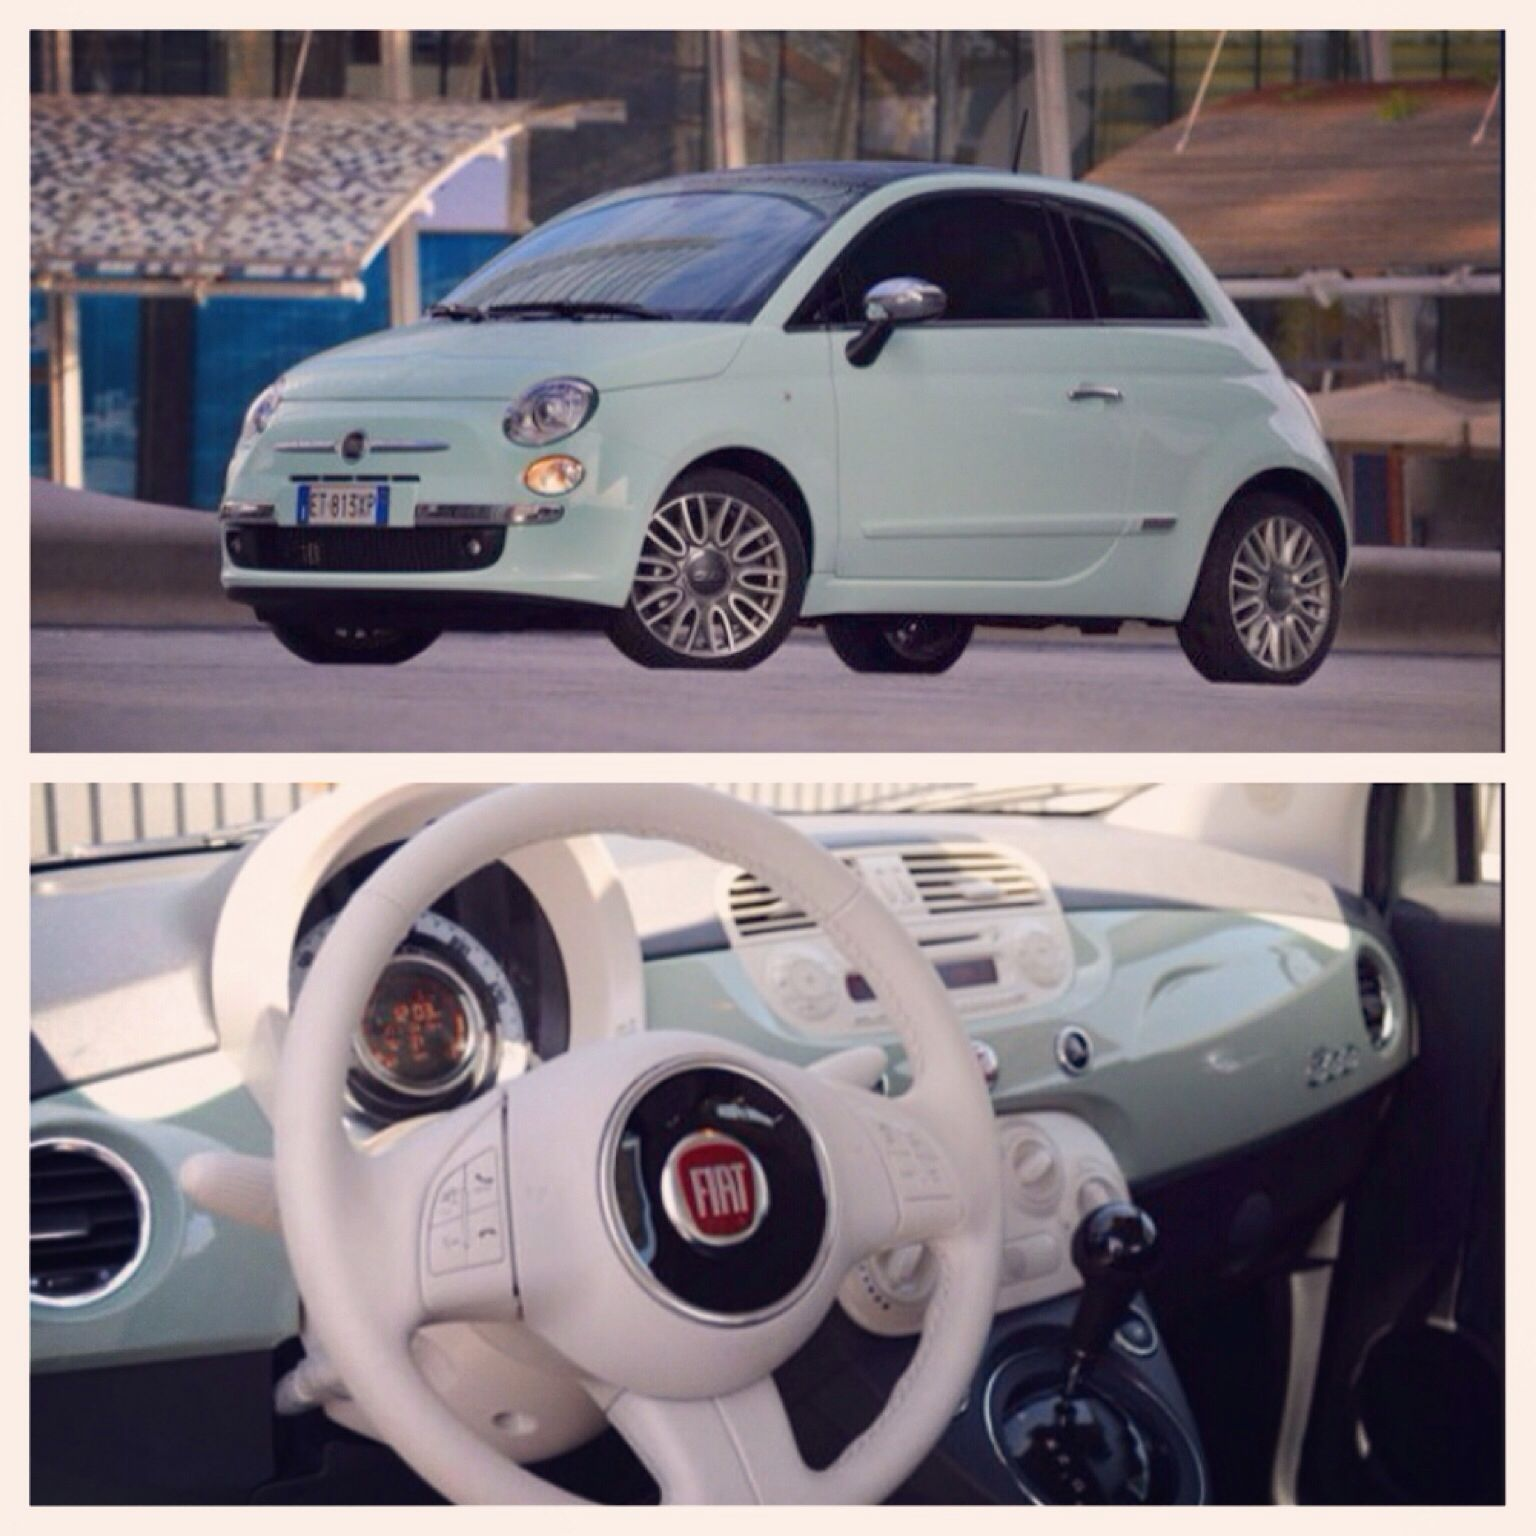 Beliebt Mint green fiat 500. Cars are not my thing but this one I love <3  JB67